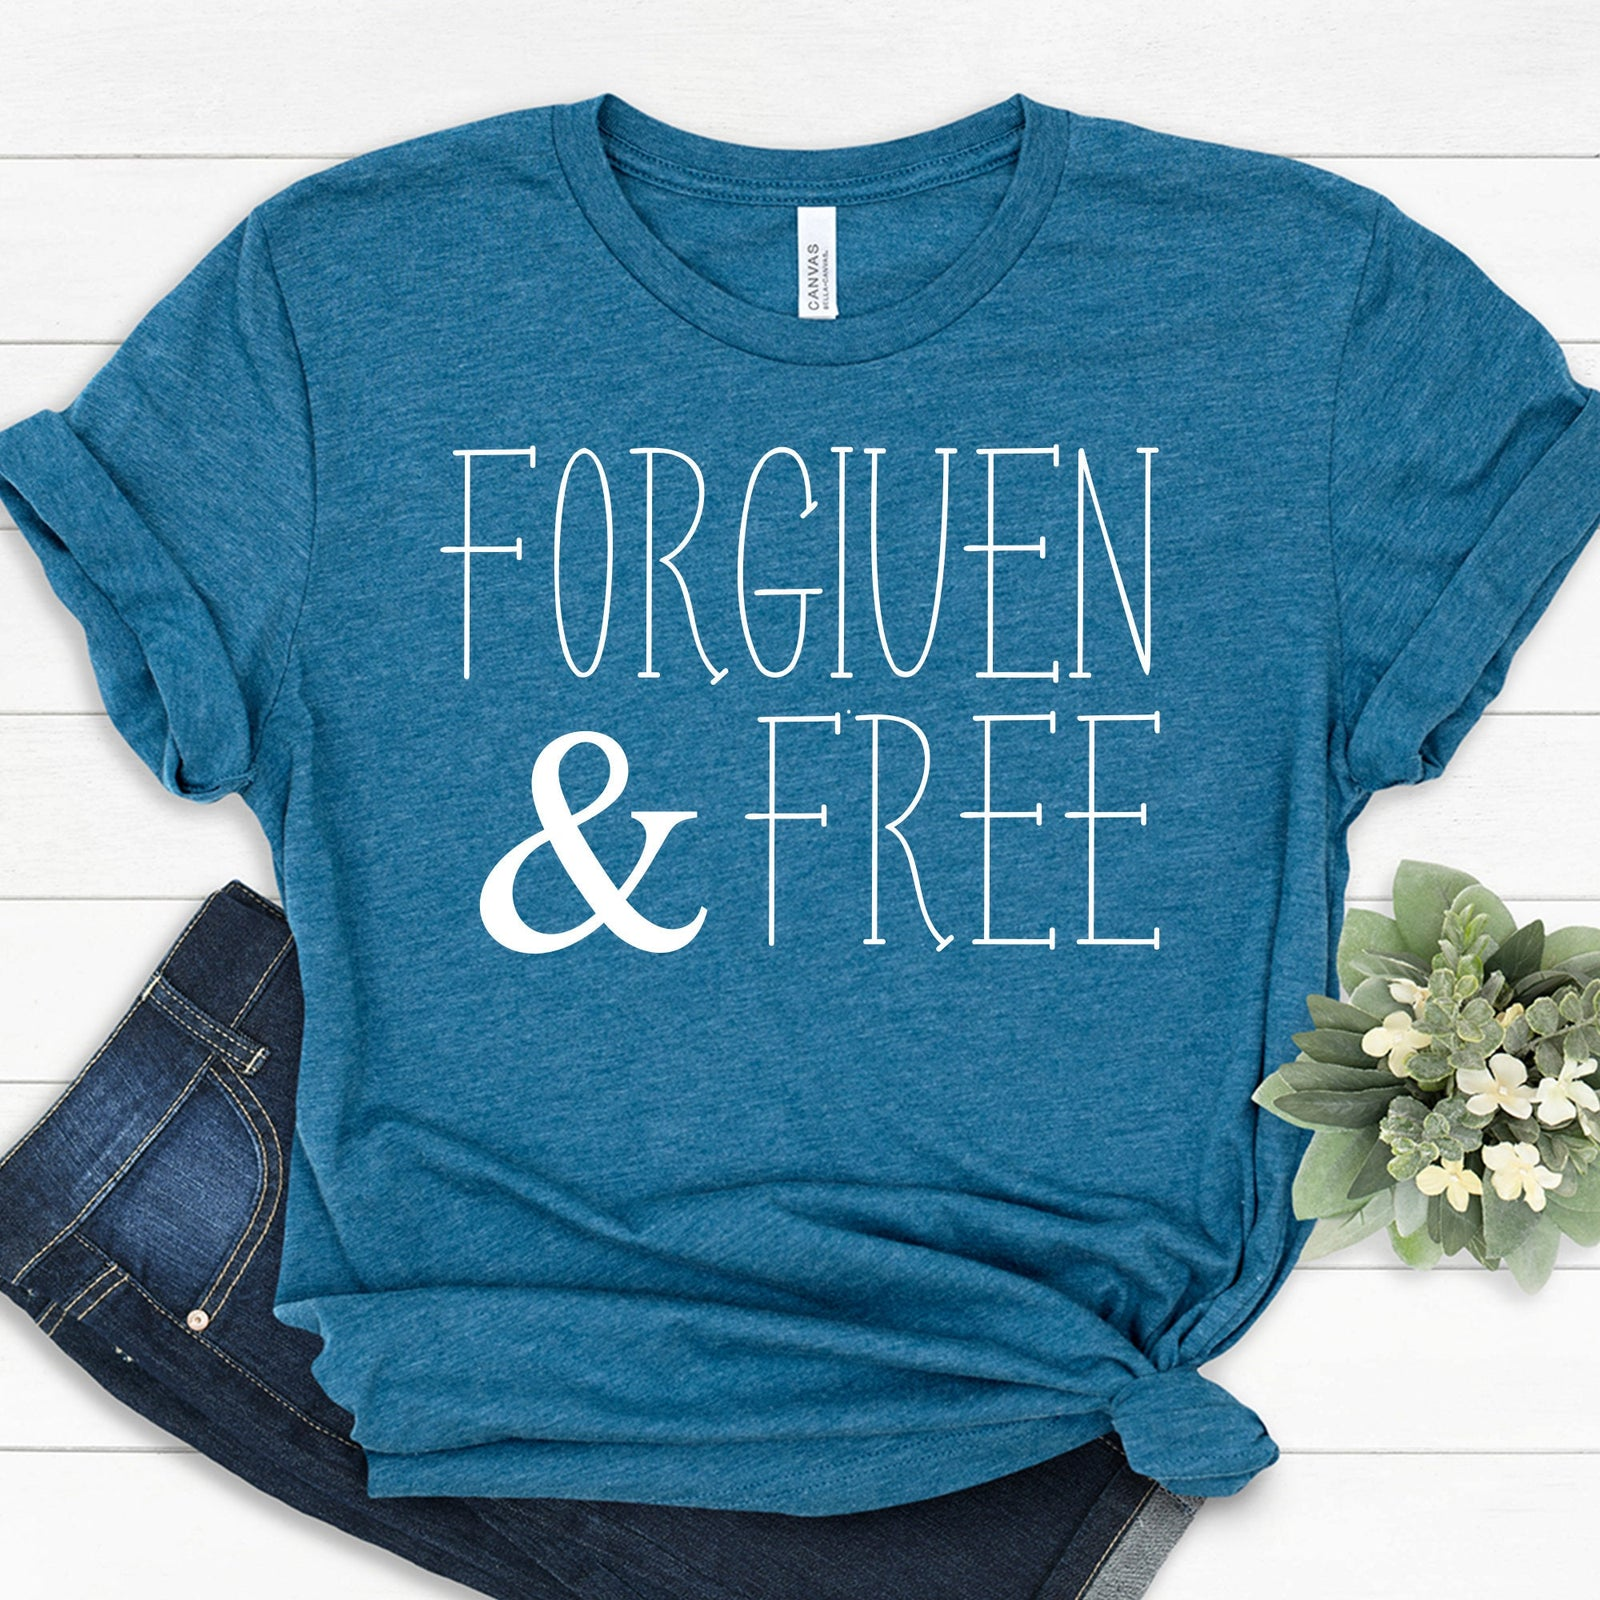 Forgiven and Free T Shirt - Christian Shirt- Jesus T Shirt - Blessed T Shirt